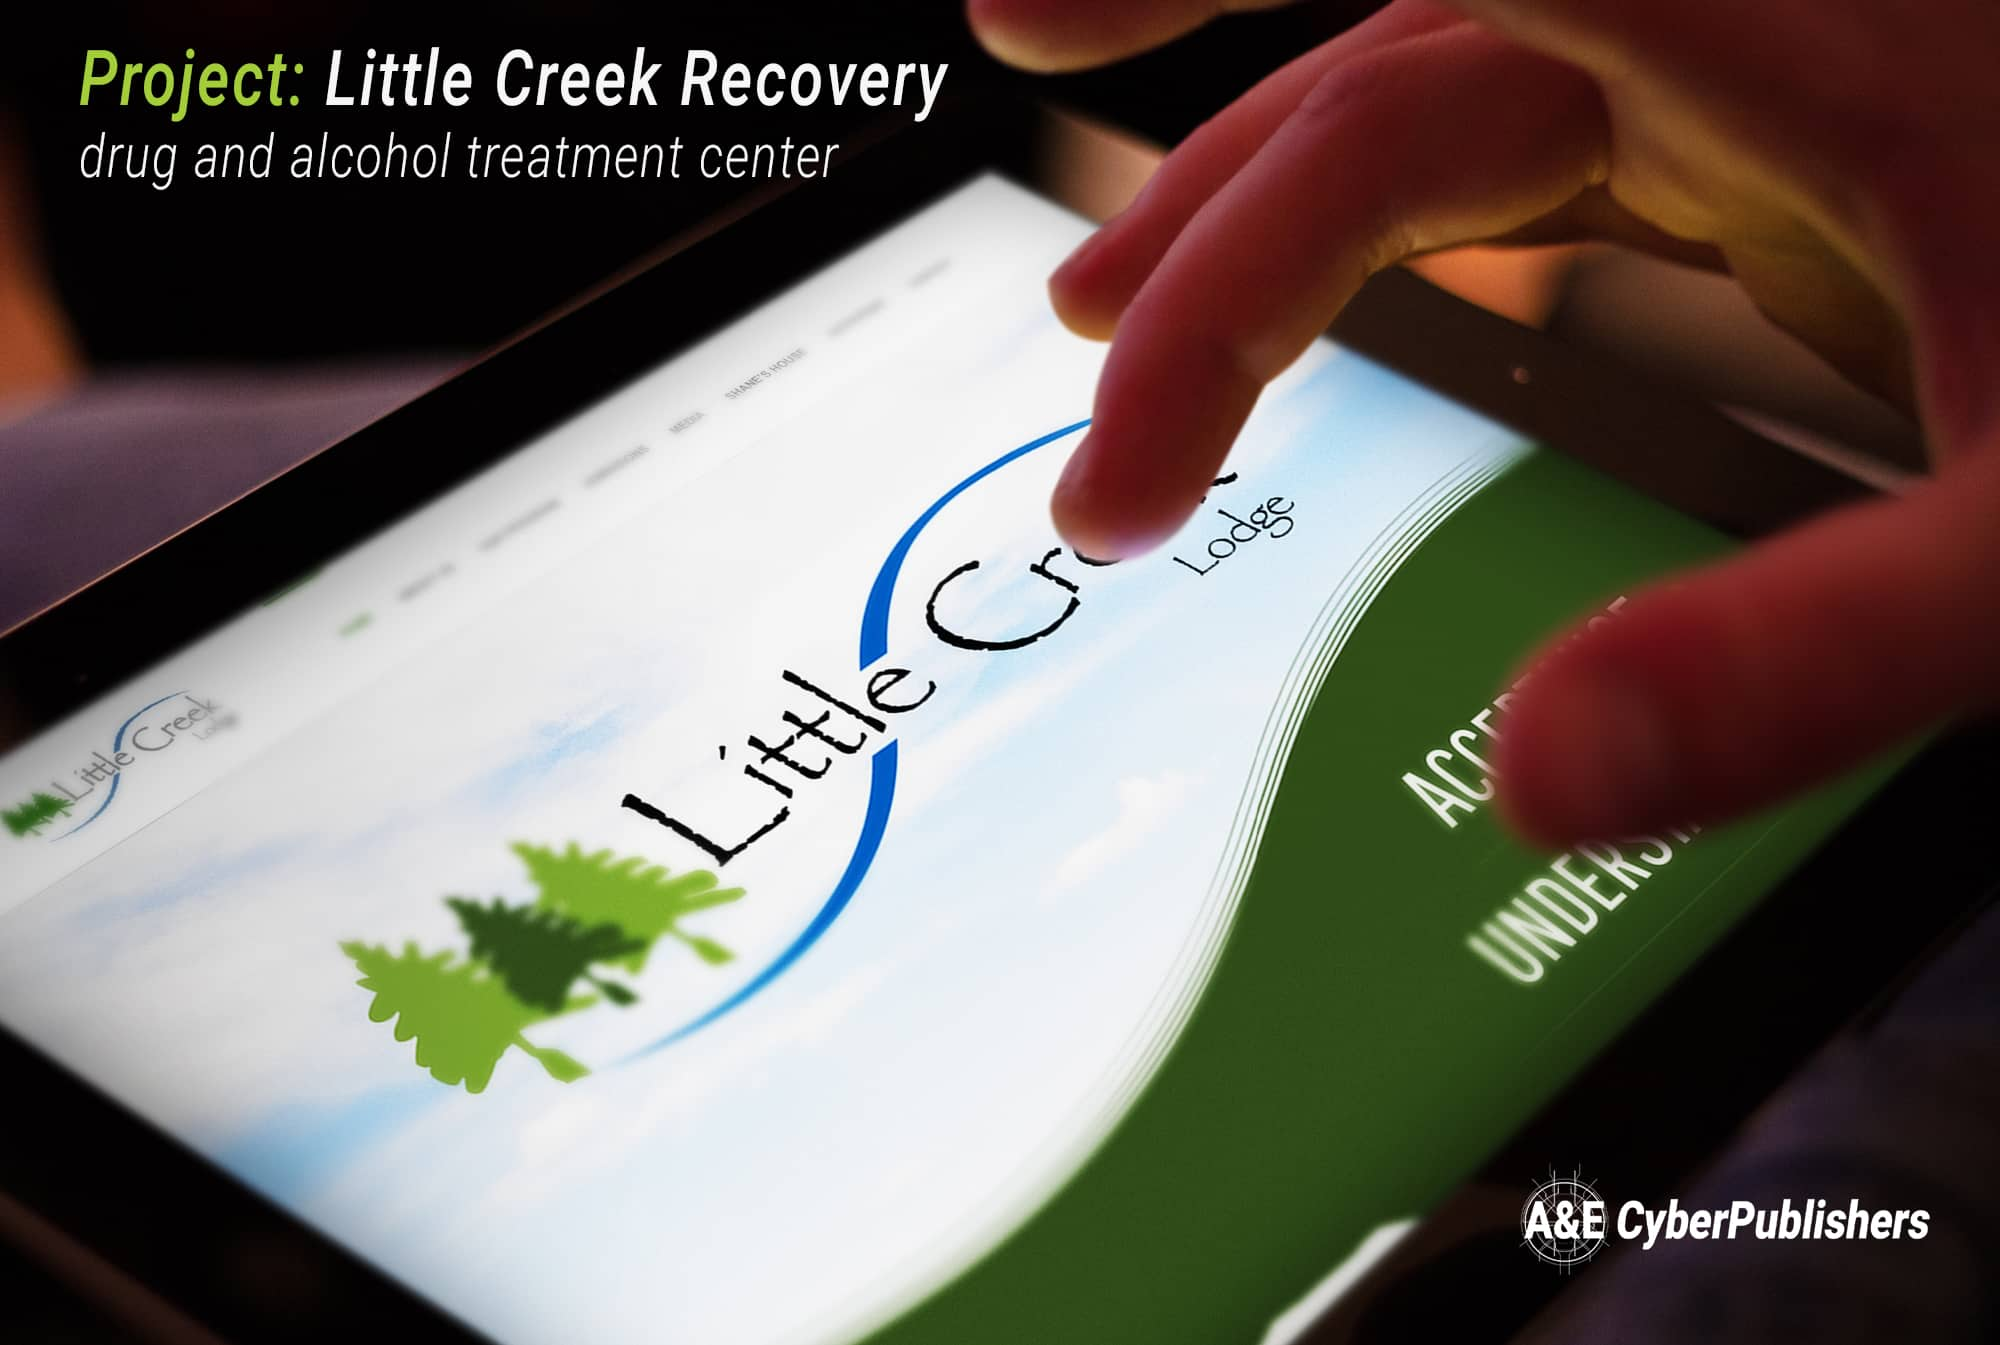 Little Creek Recovery Drug Rehab